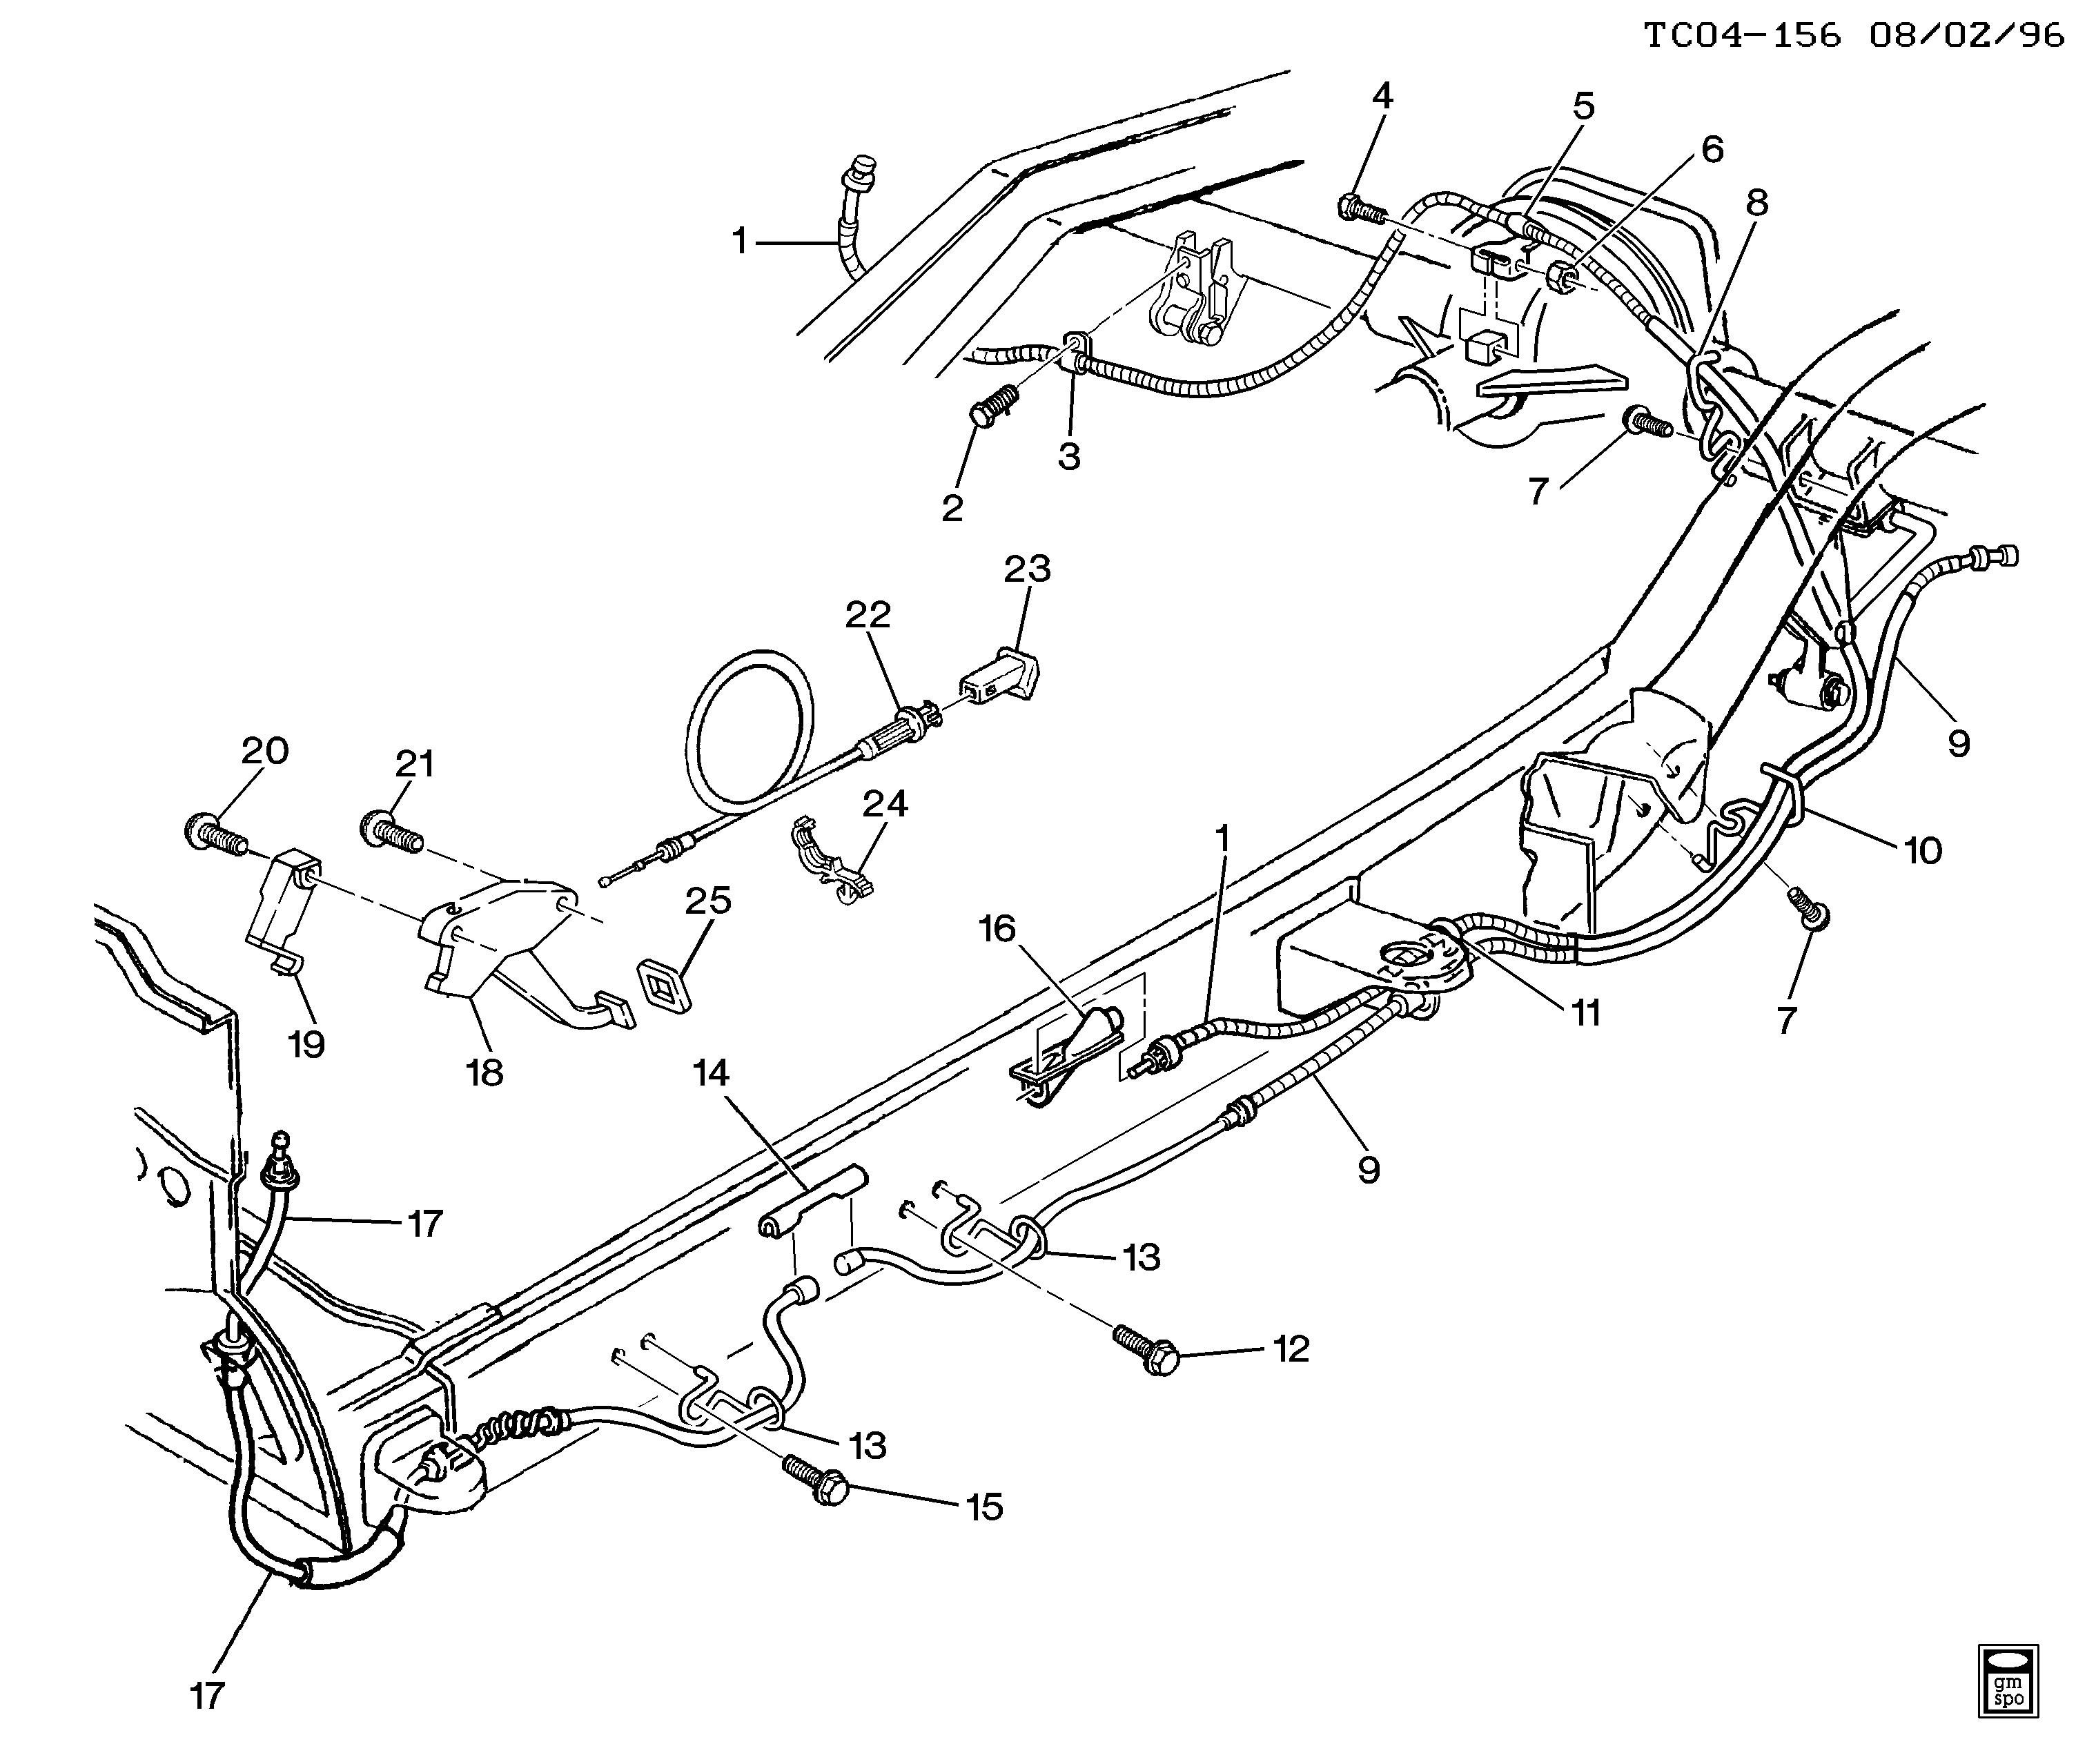 Silverado Steering Diagram